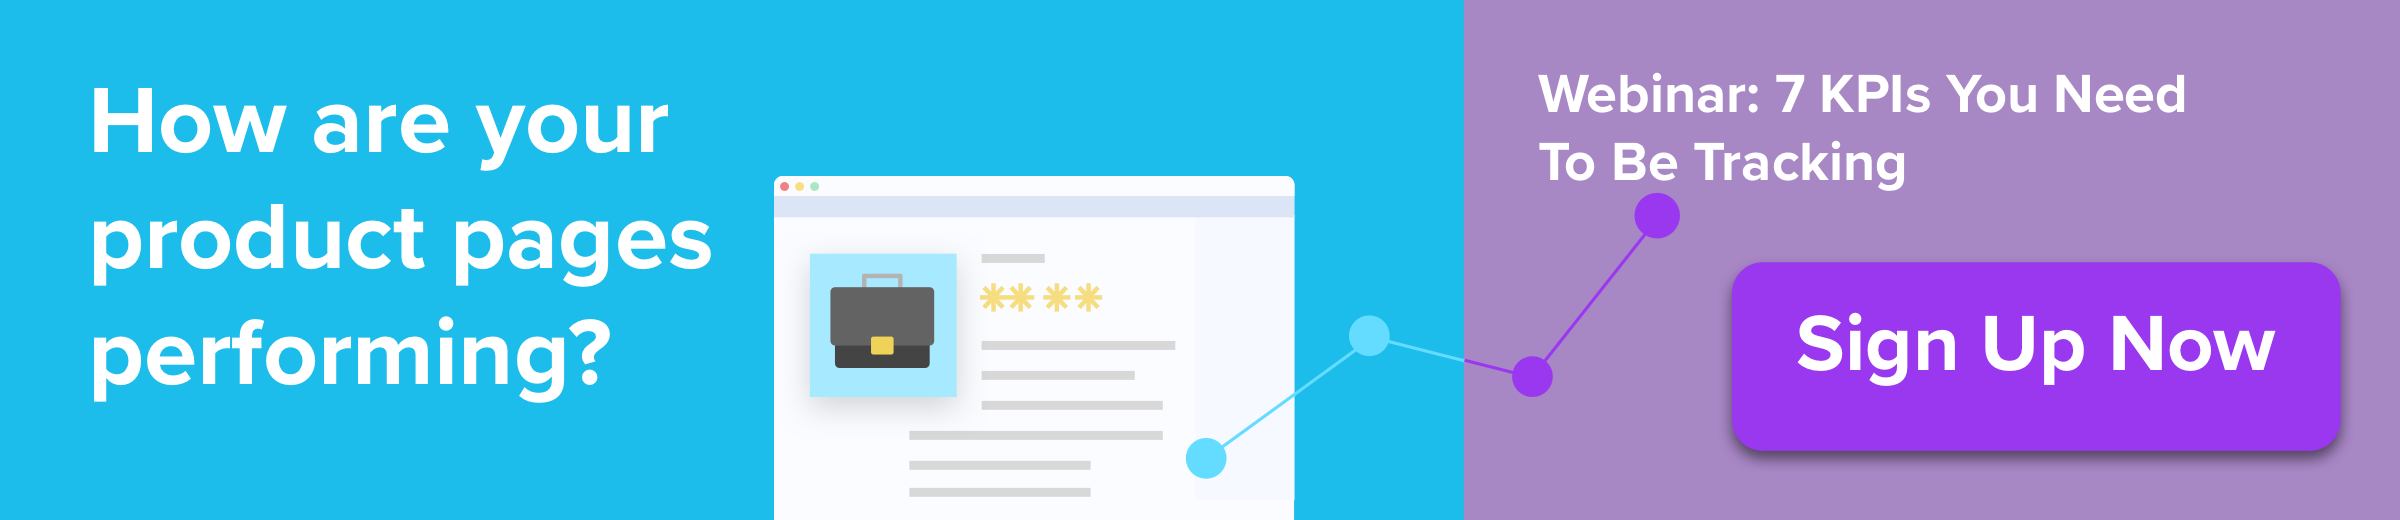 7-kpis-product-page-performance-email.png